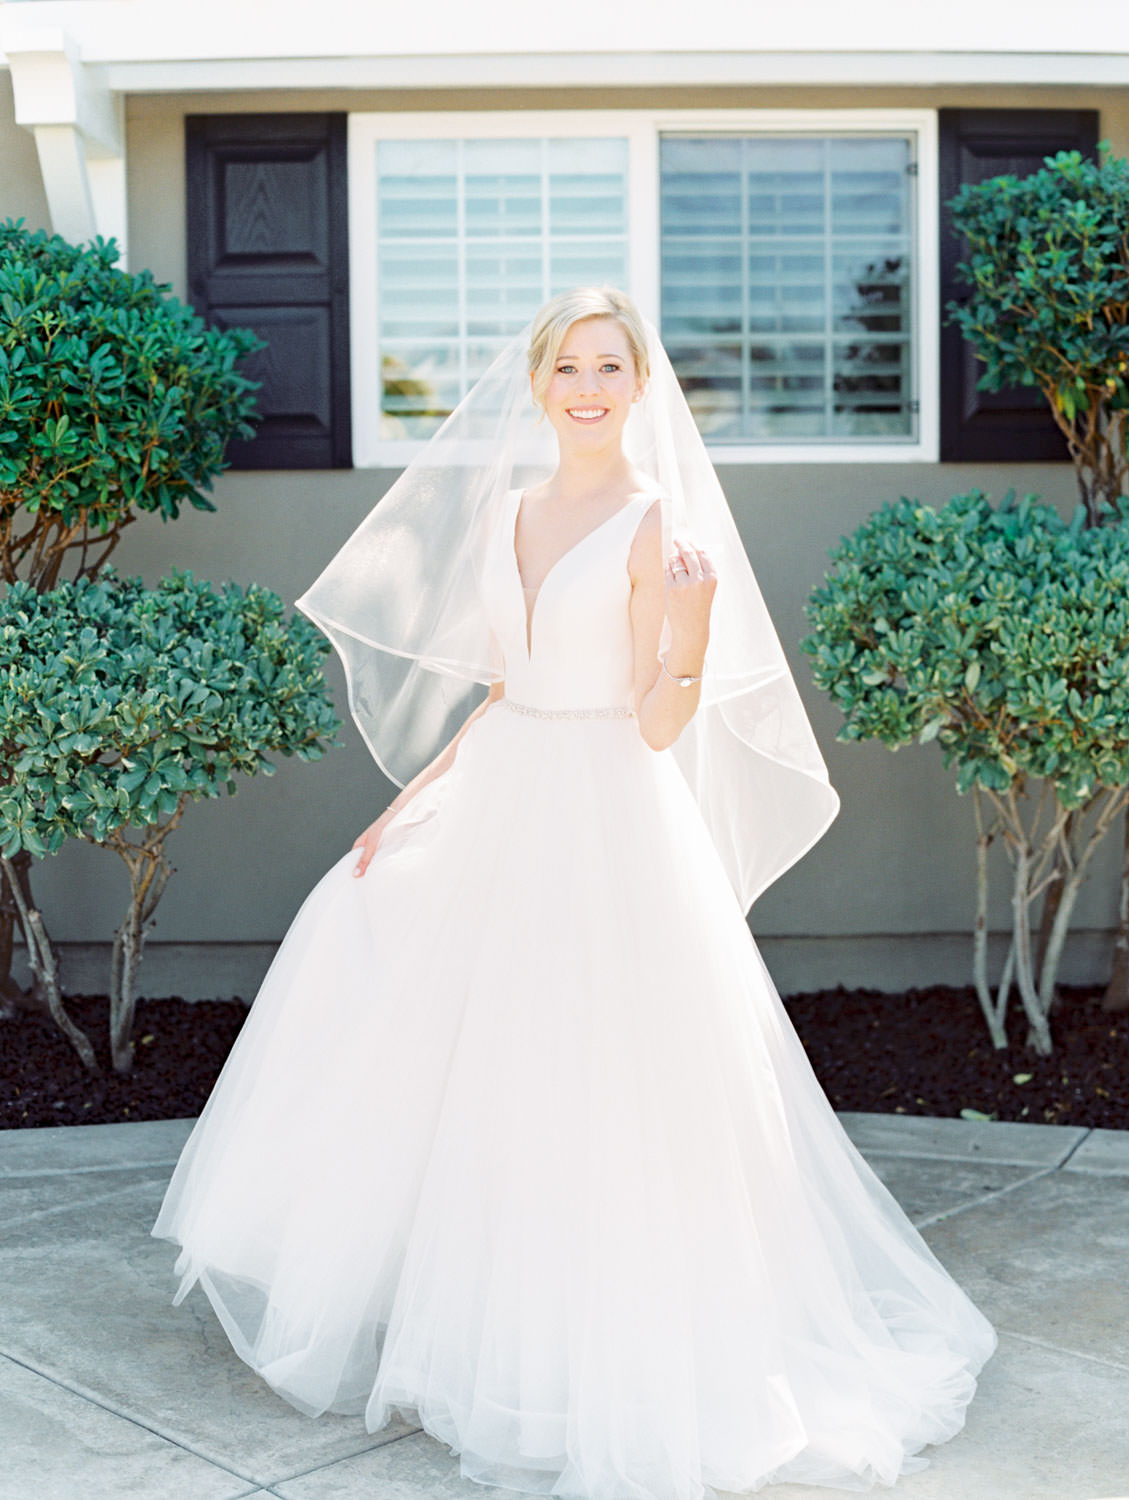 Bride in Stella York gown and veil for a classic bridal portrait. San Diego wedding shot on film by Cavin Elizabeth Photography